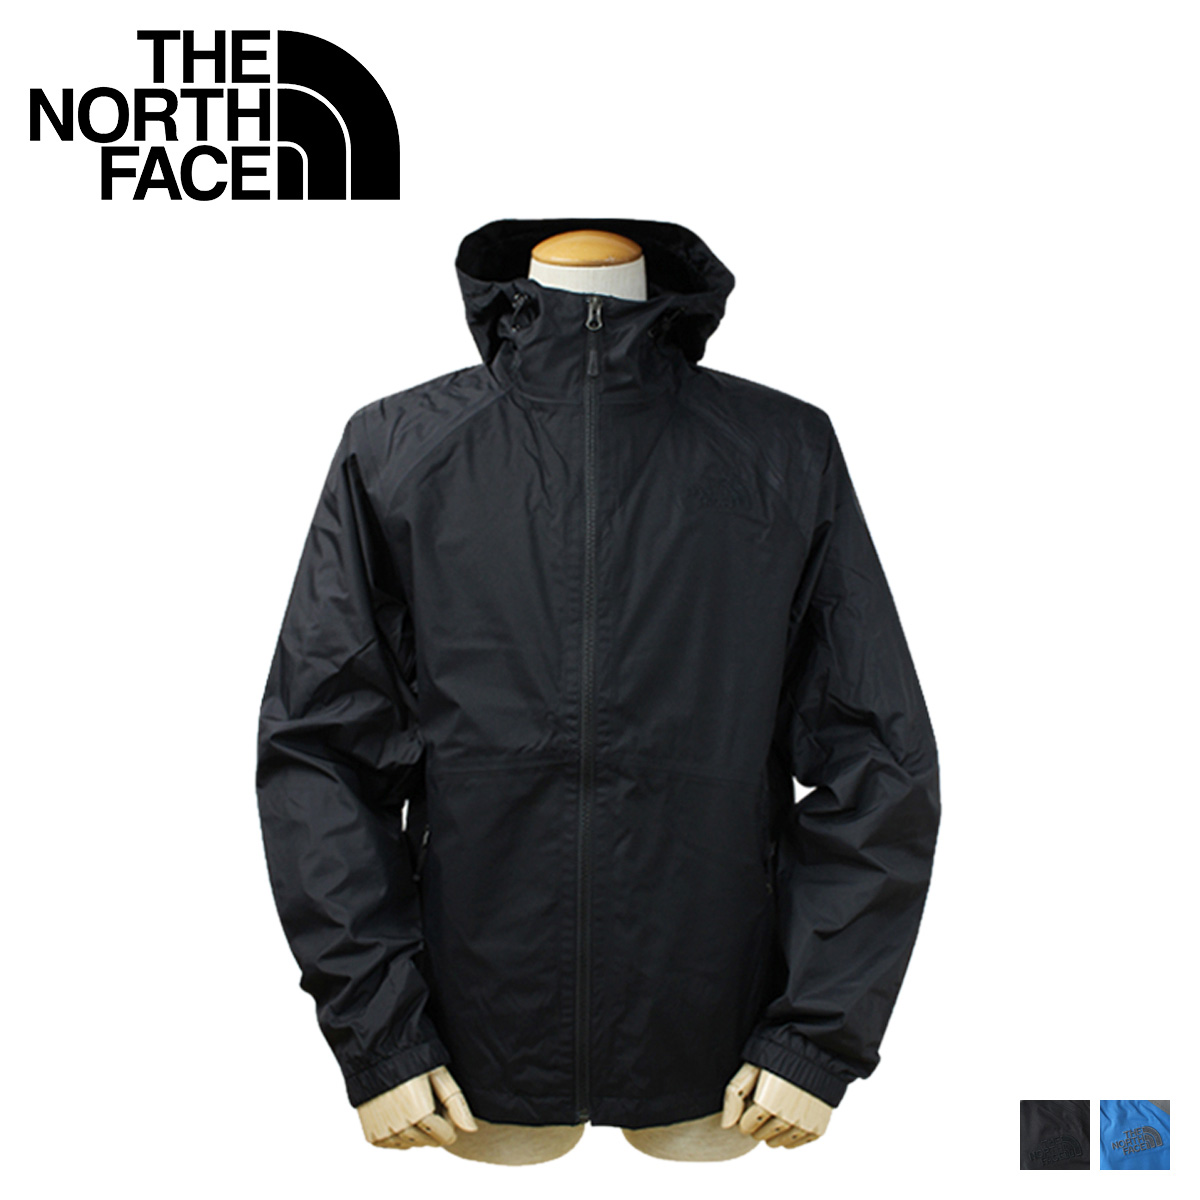 Whats up Sports  THE NORTH FACE rain jackets MEN S ALL ABOUT JACKET  waterproof and water-repellent water north face jacket  763dc9d97